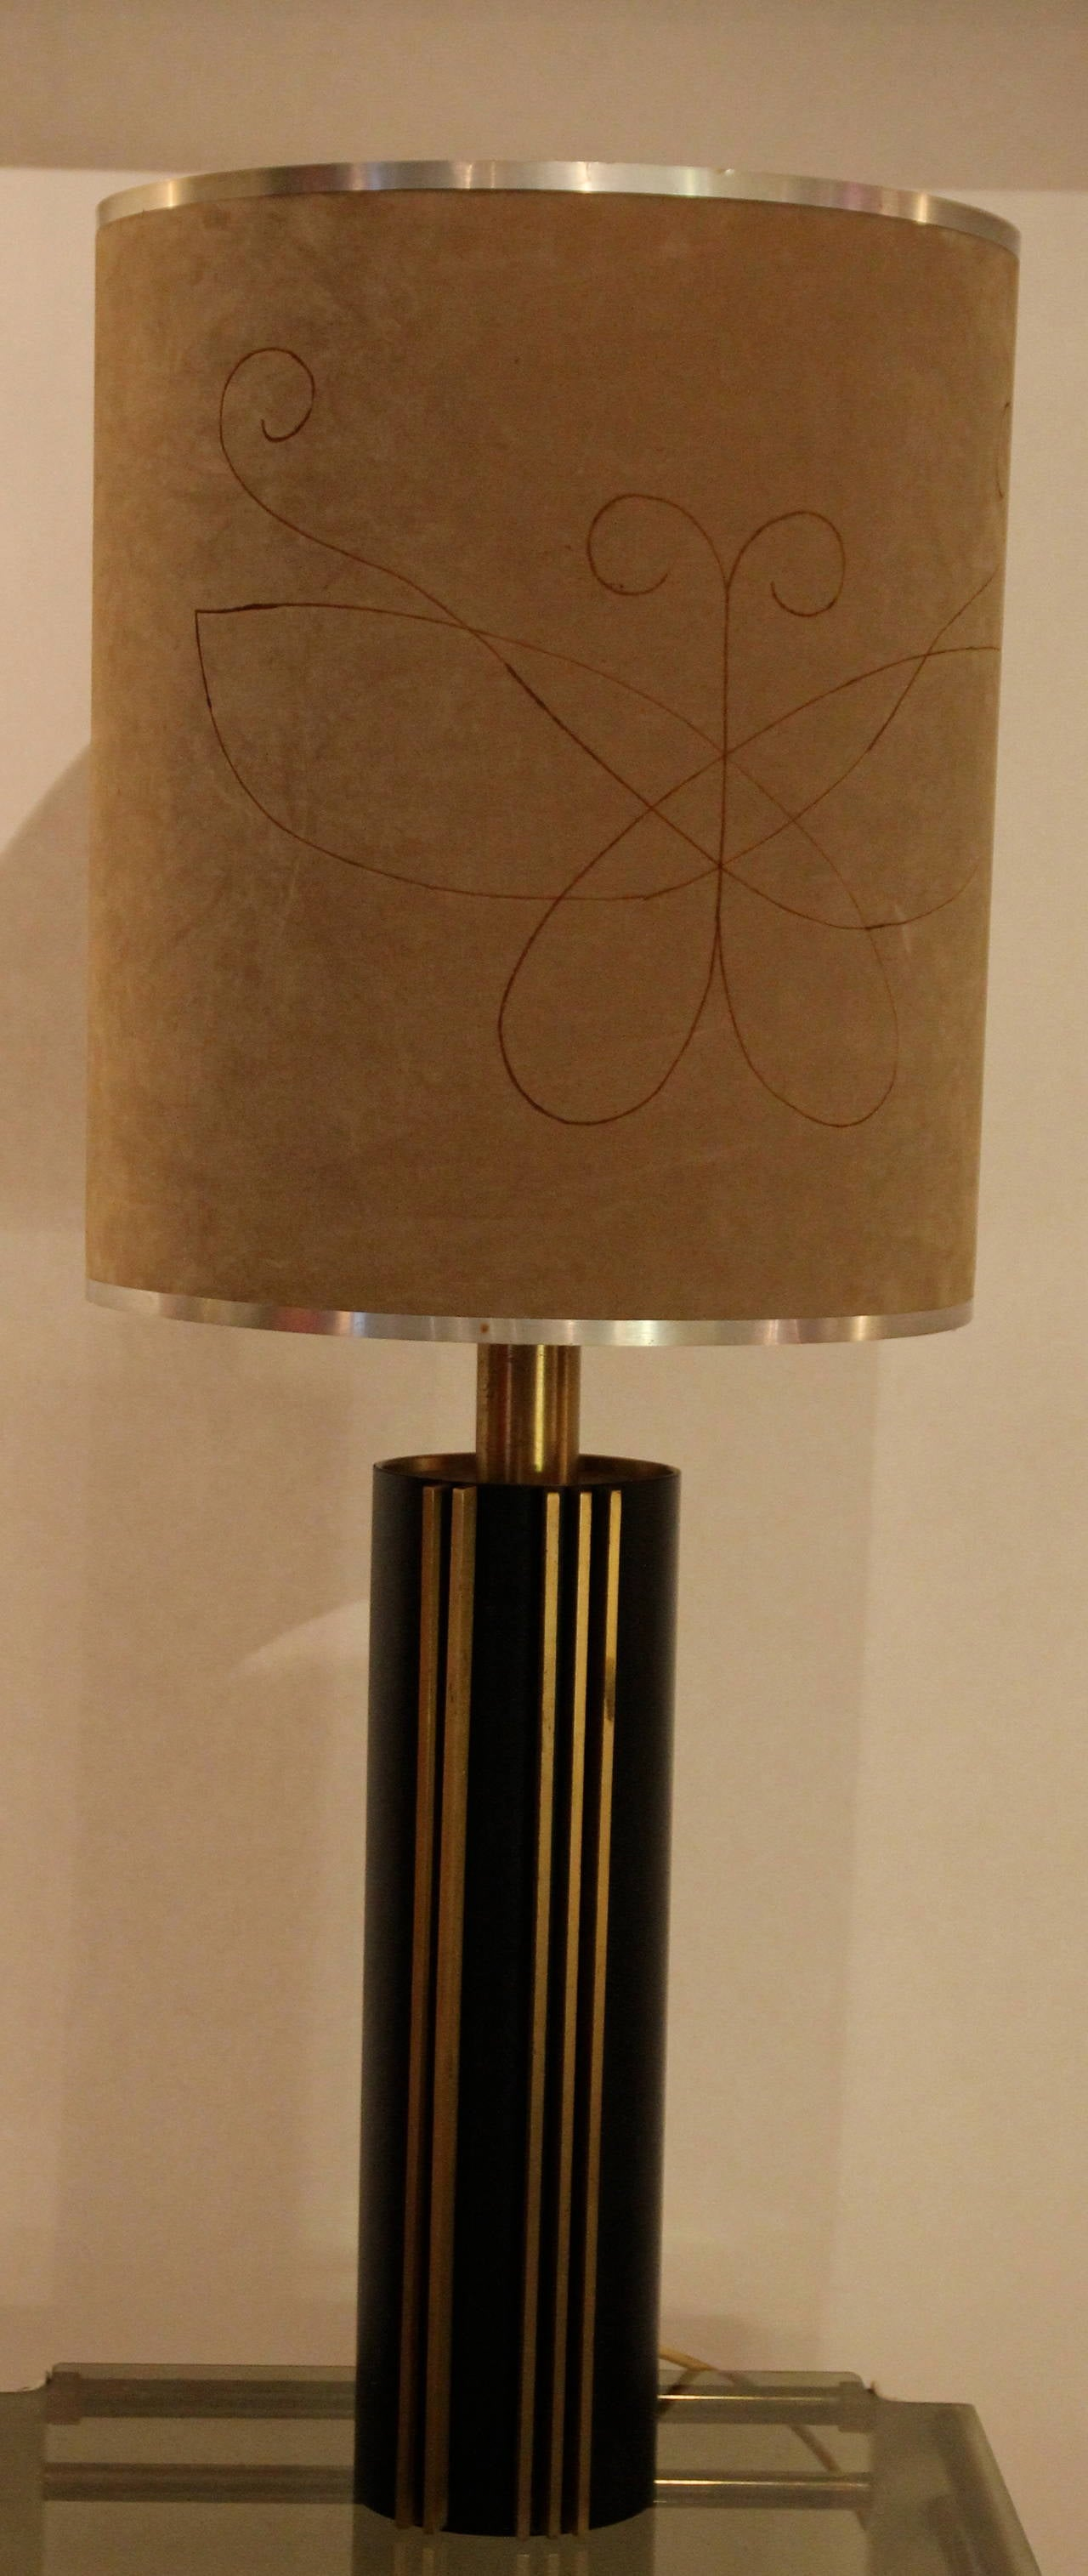 Angelo Brotto, table lamp, circa 1970, Italy, Esperia Edition,